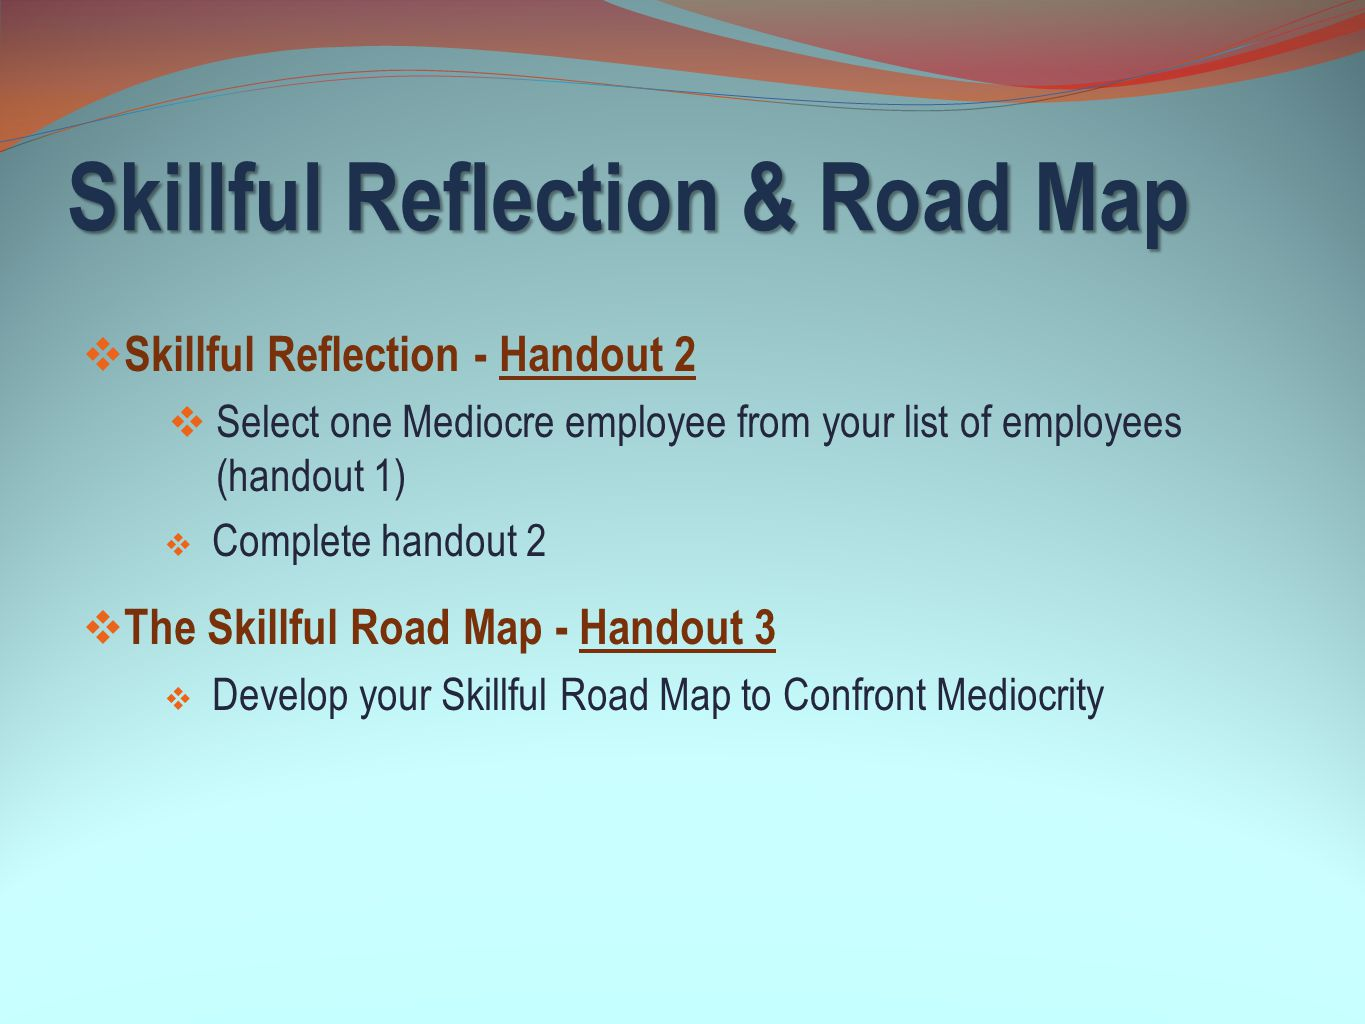 Skillful Reflection & Road Map